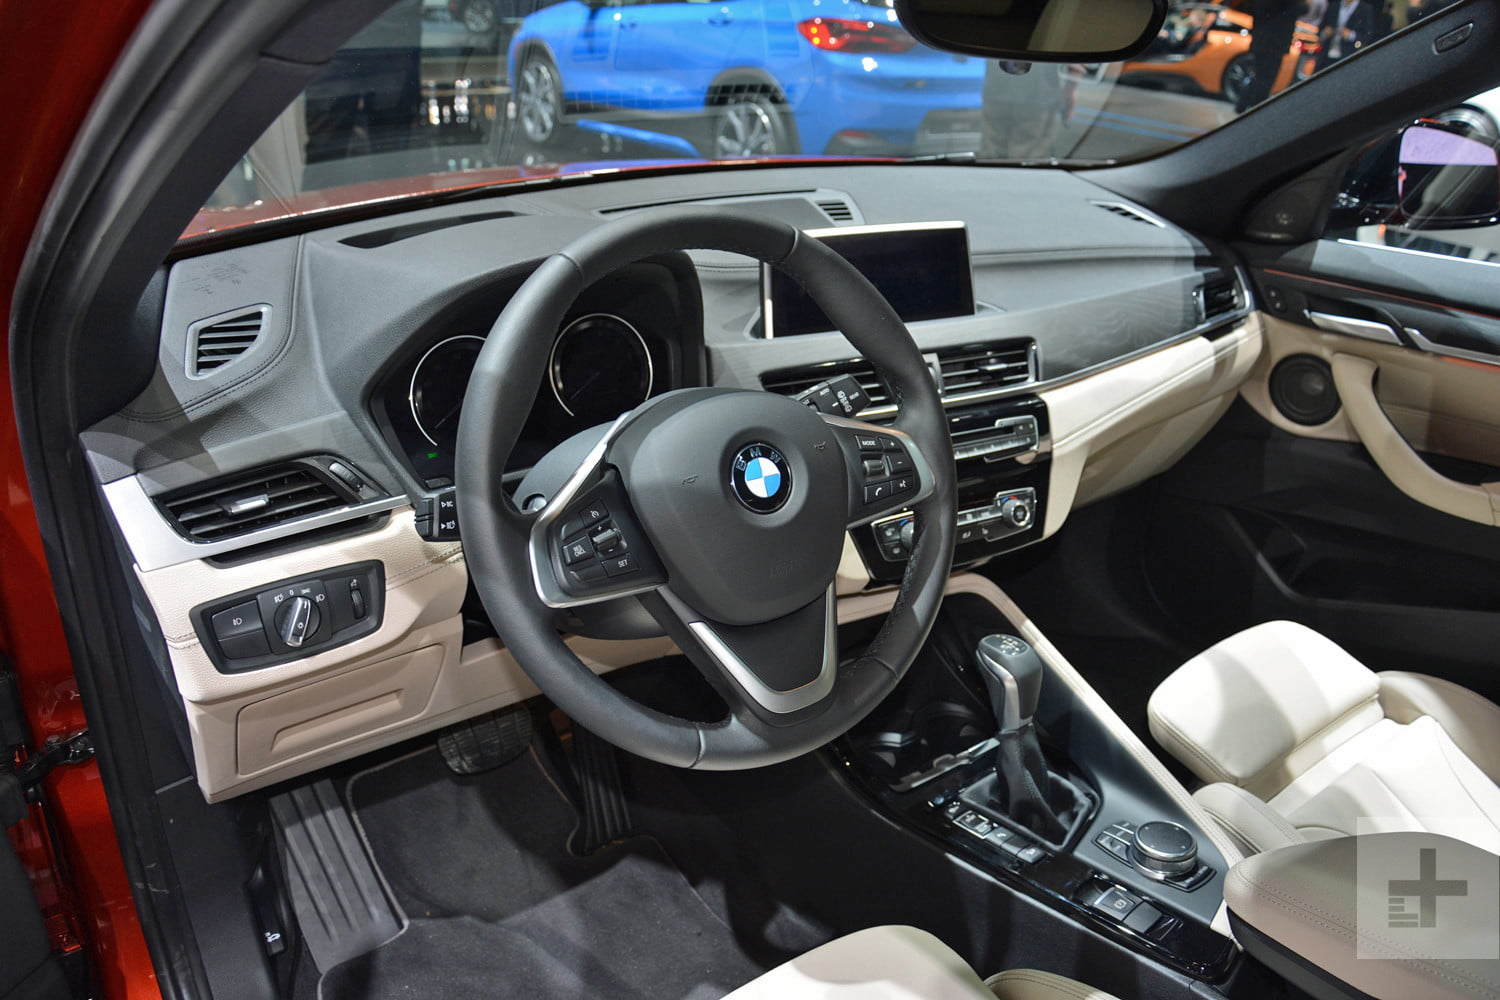 2018 bmw x2 design insight technology and interior features BMW iPod & USB Adapter 2018 bmw x2